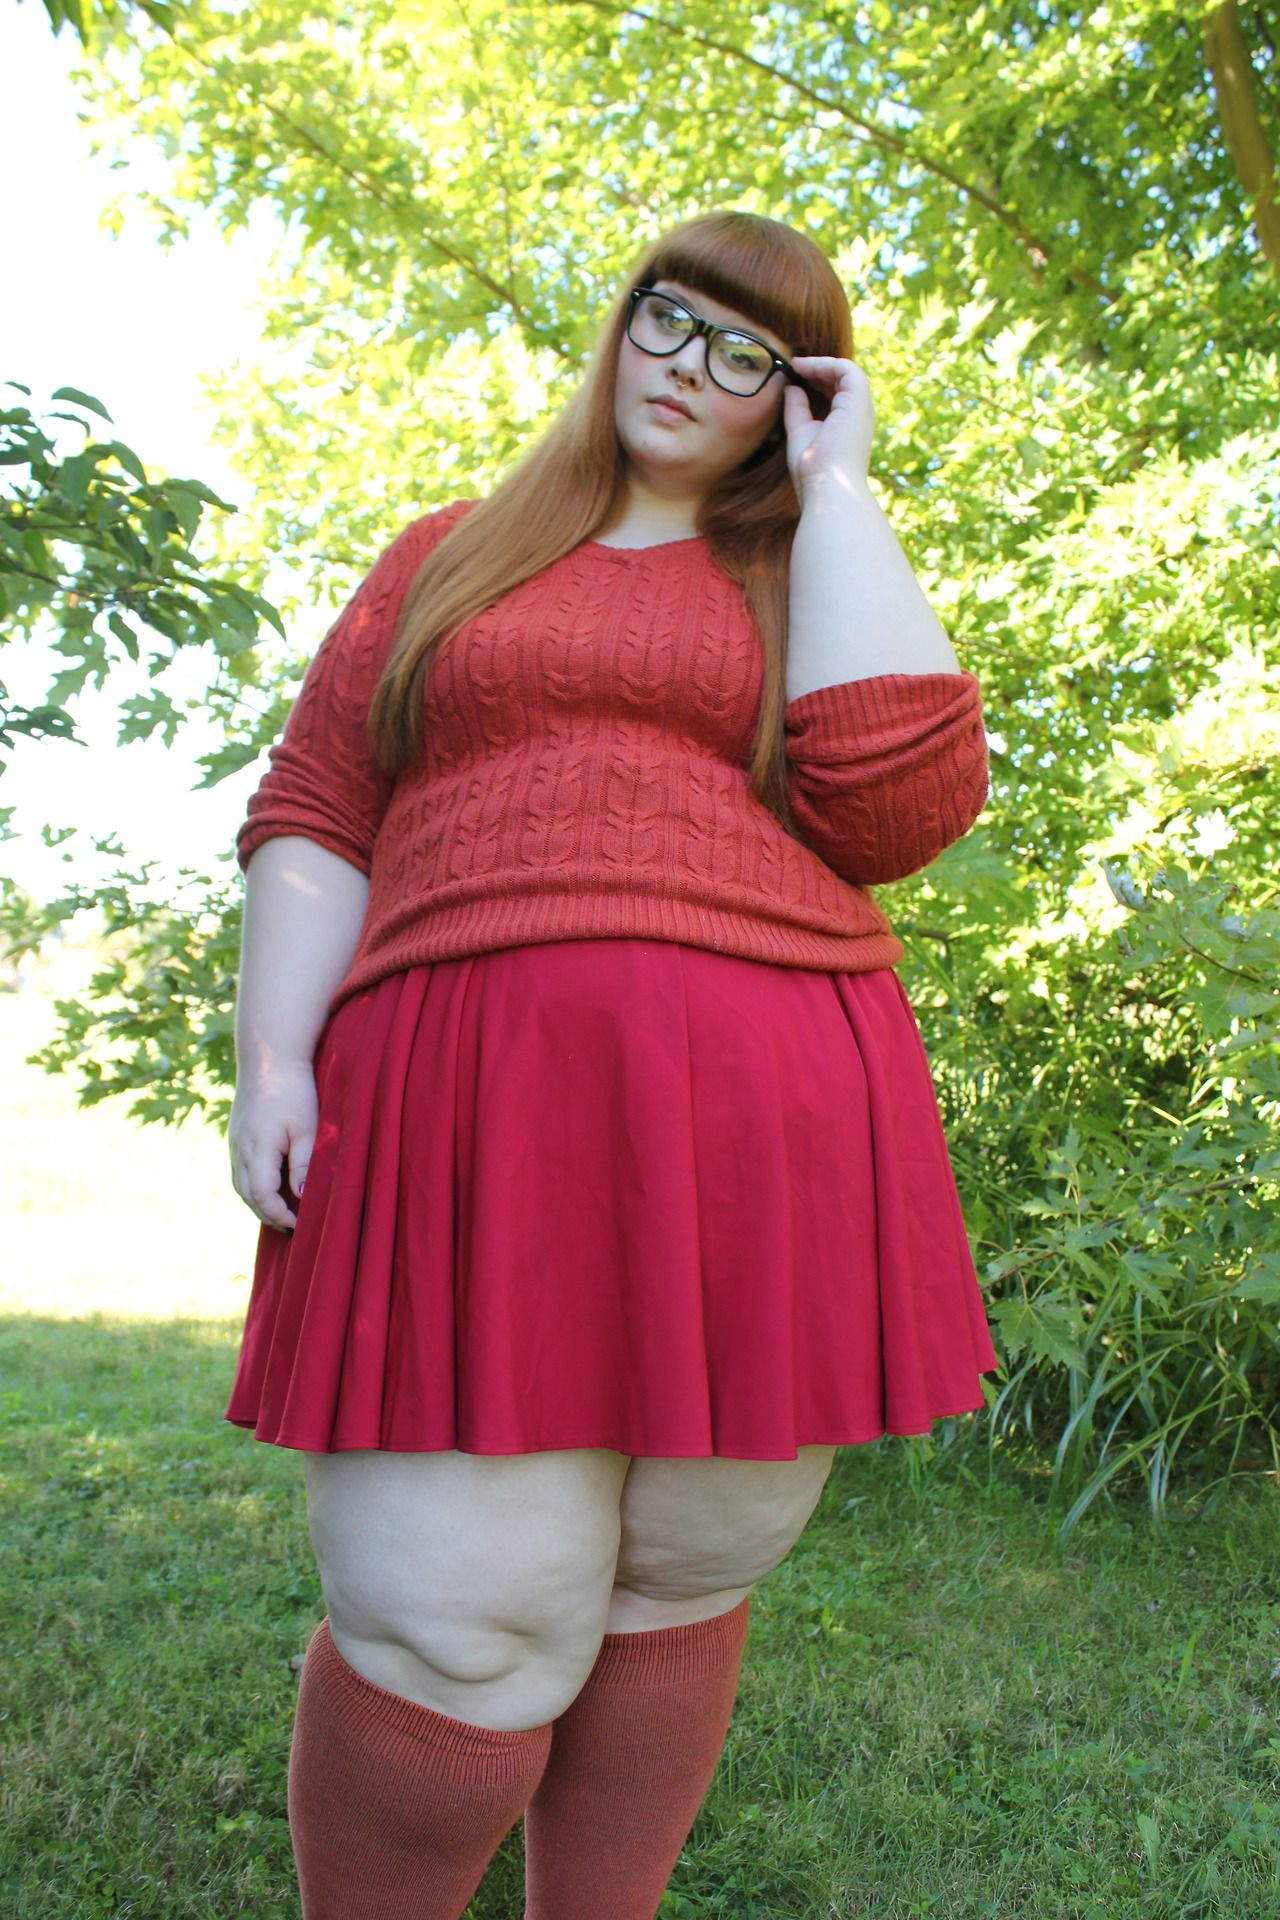 Fat girl dating michigan